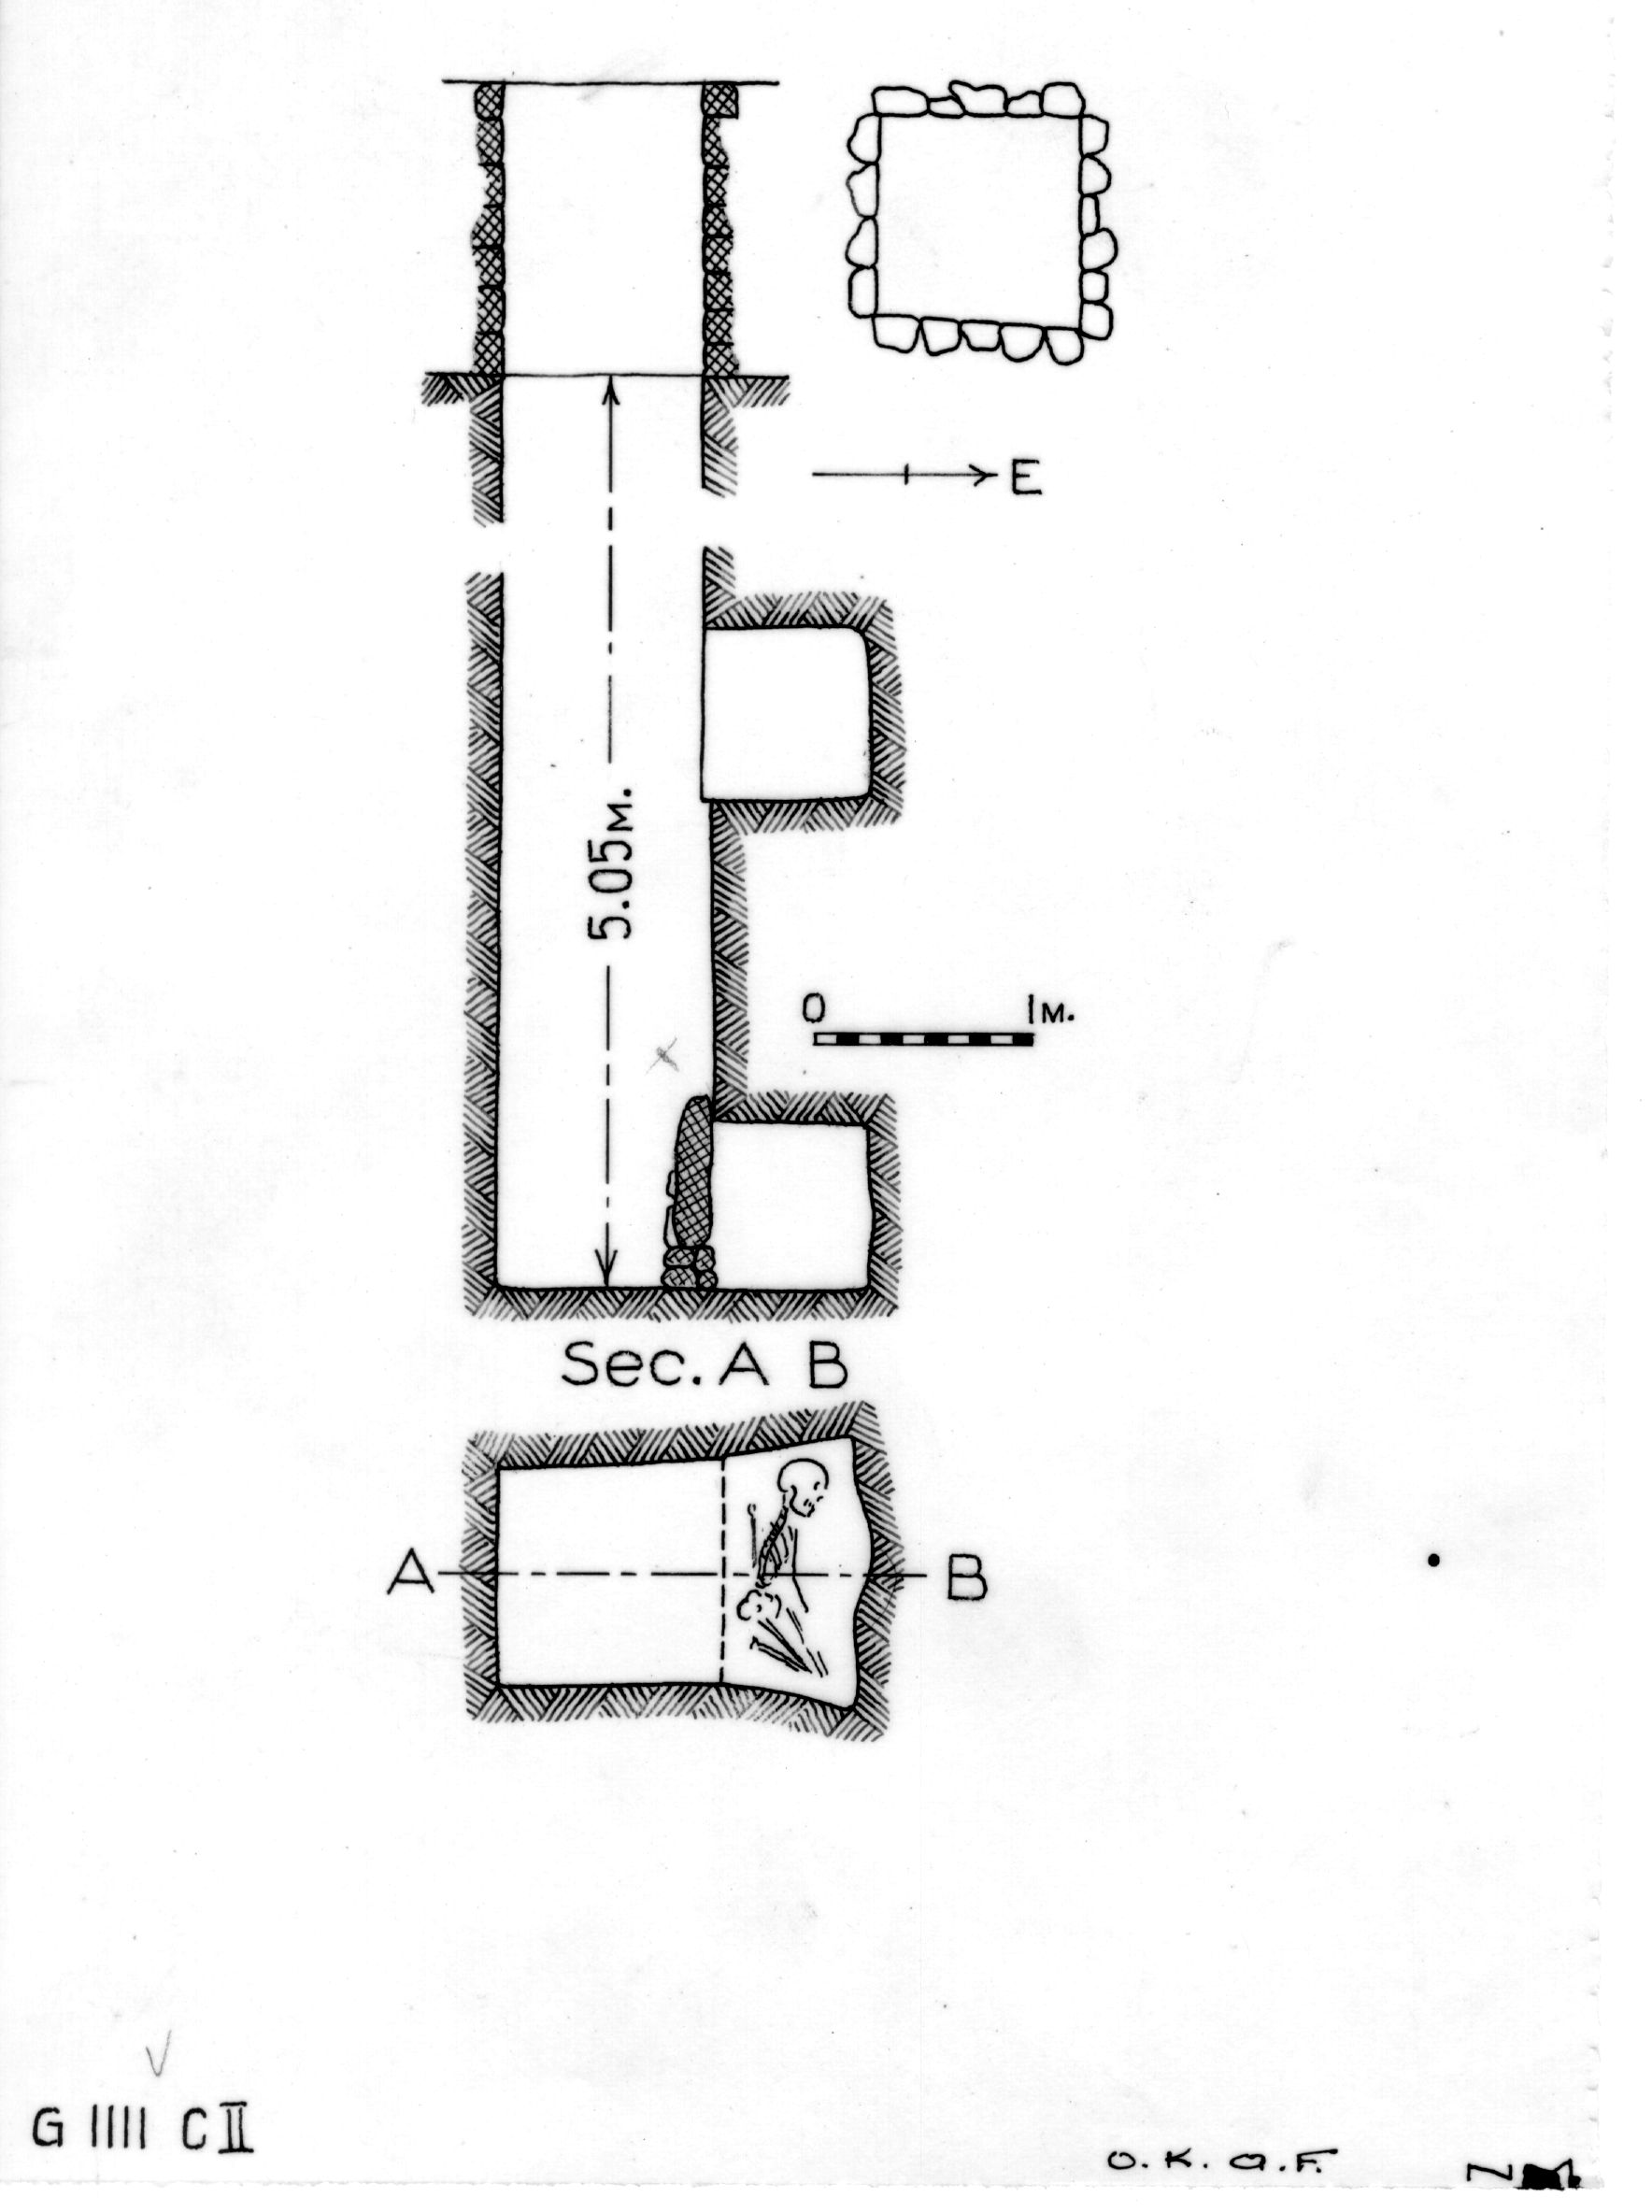 Maps and plans: G 1111, Shaft C (II)